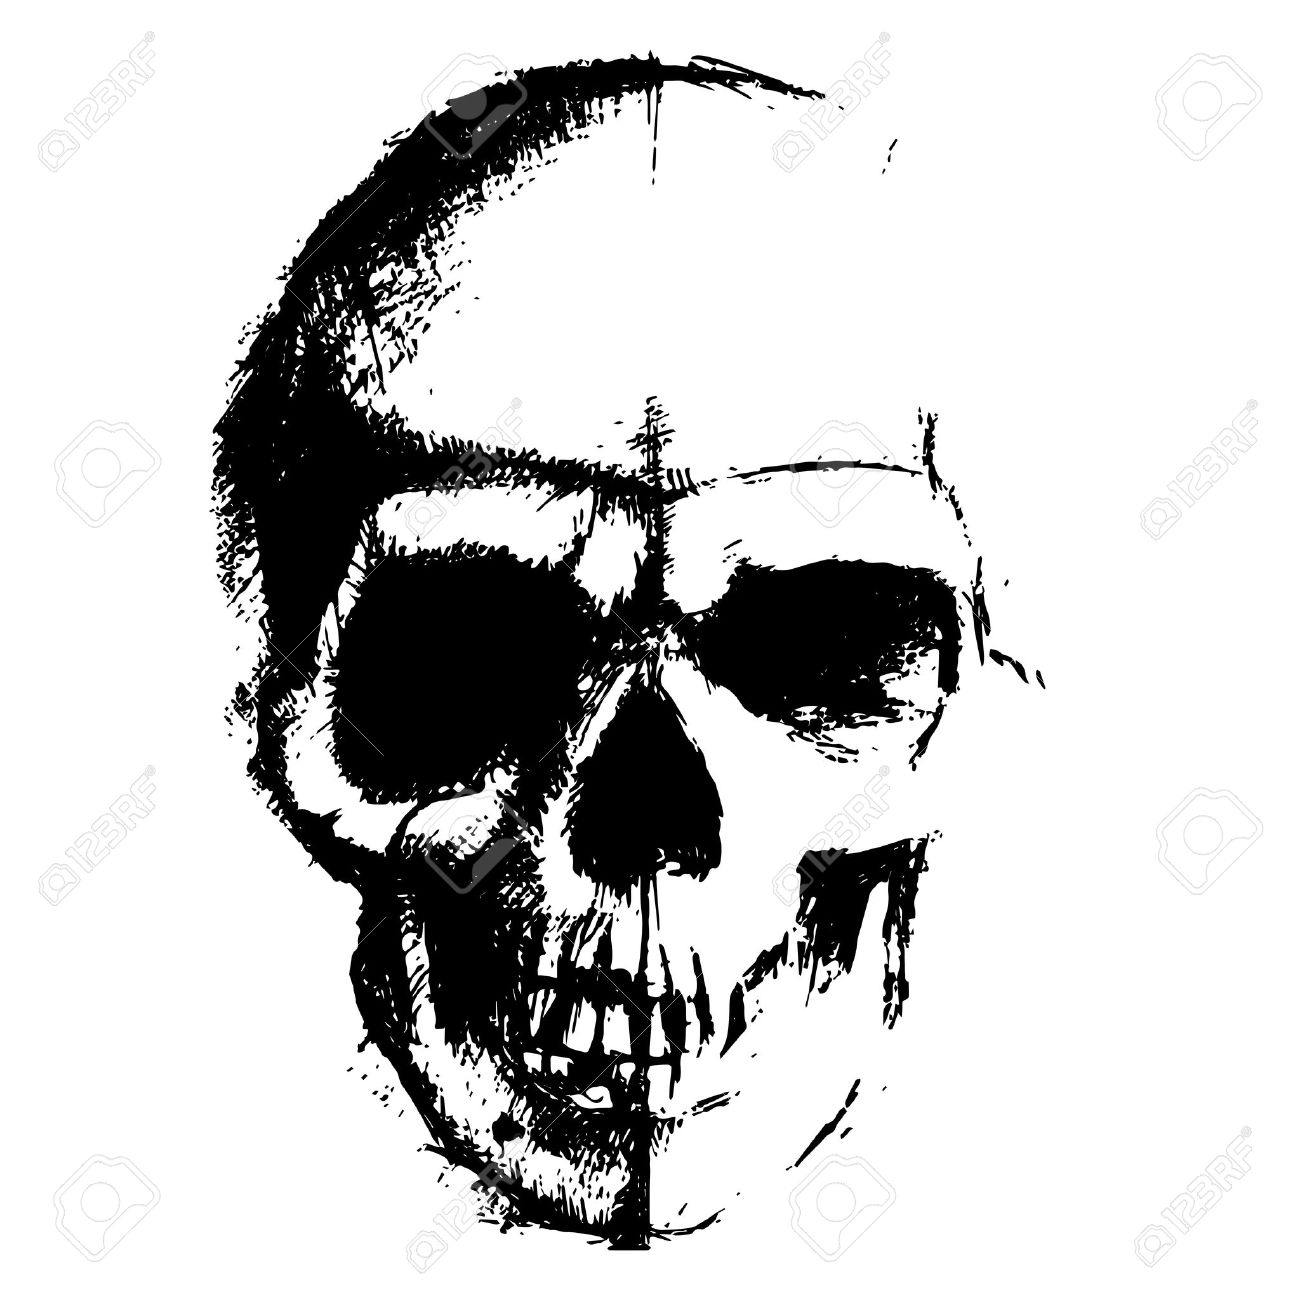 Skull sketch element isolated on white background - 50507758